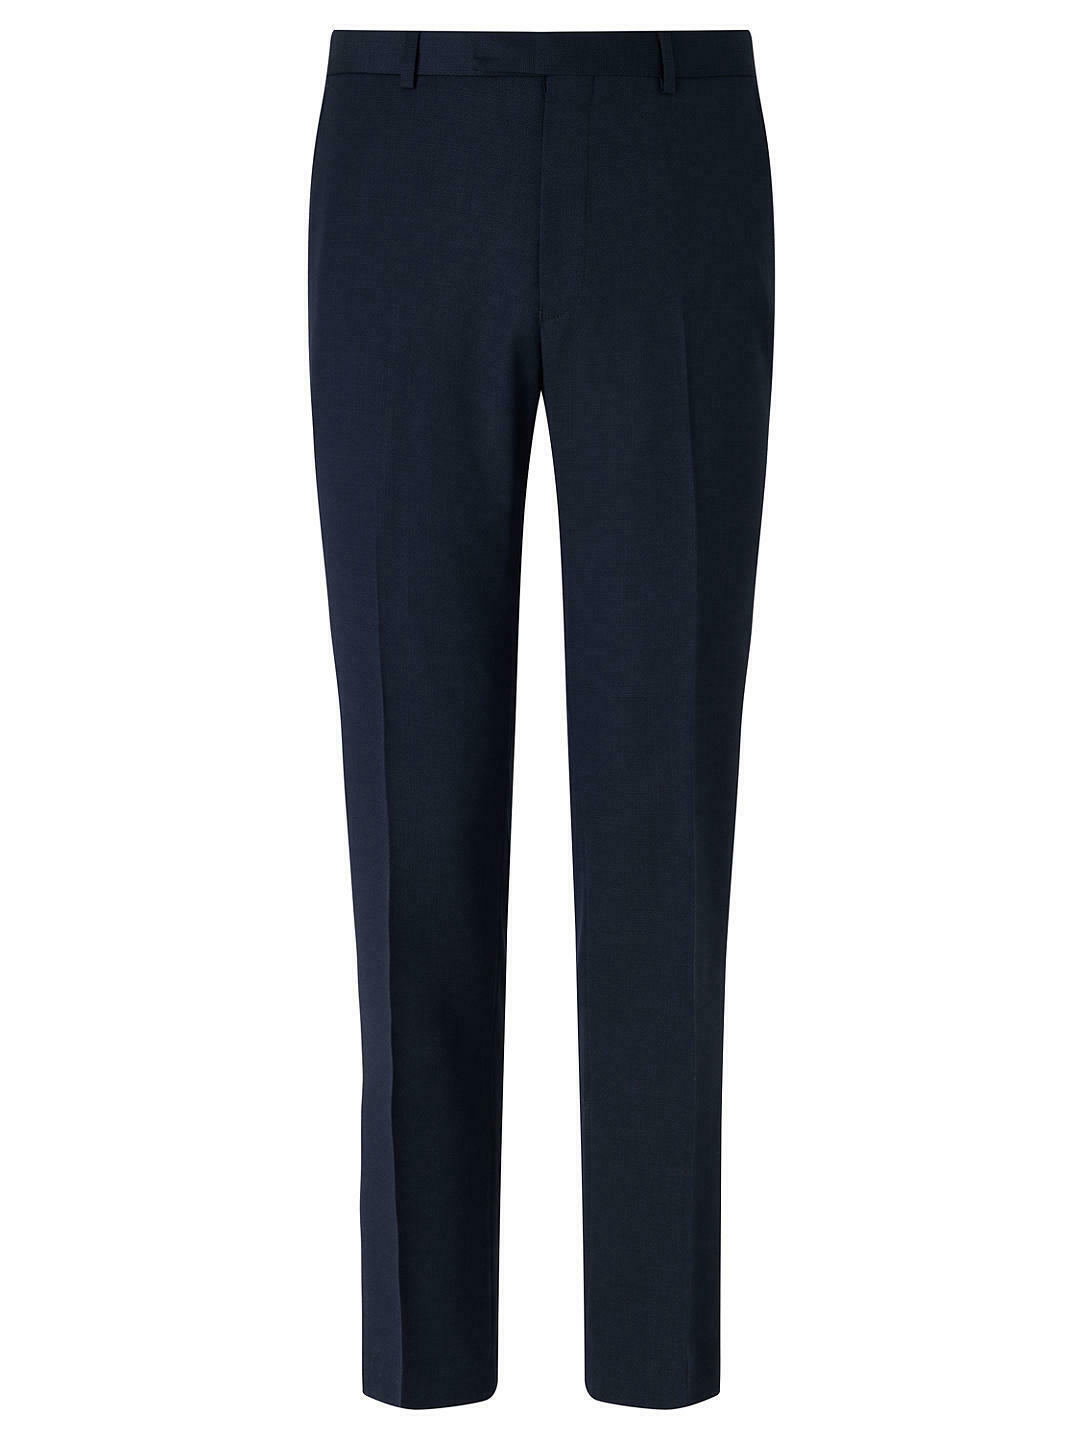 Daniel Hechter Textured Tailored Fit Suit Trousers, Navy SIZE 32S BNWT RRP